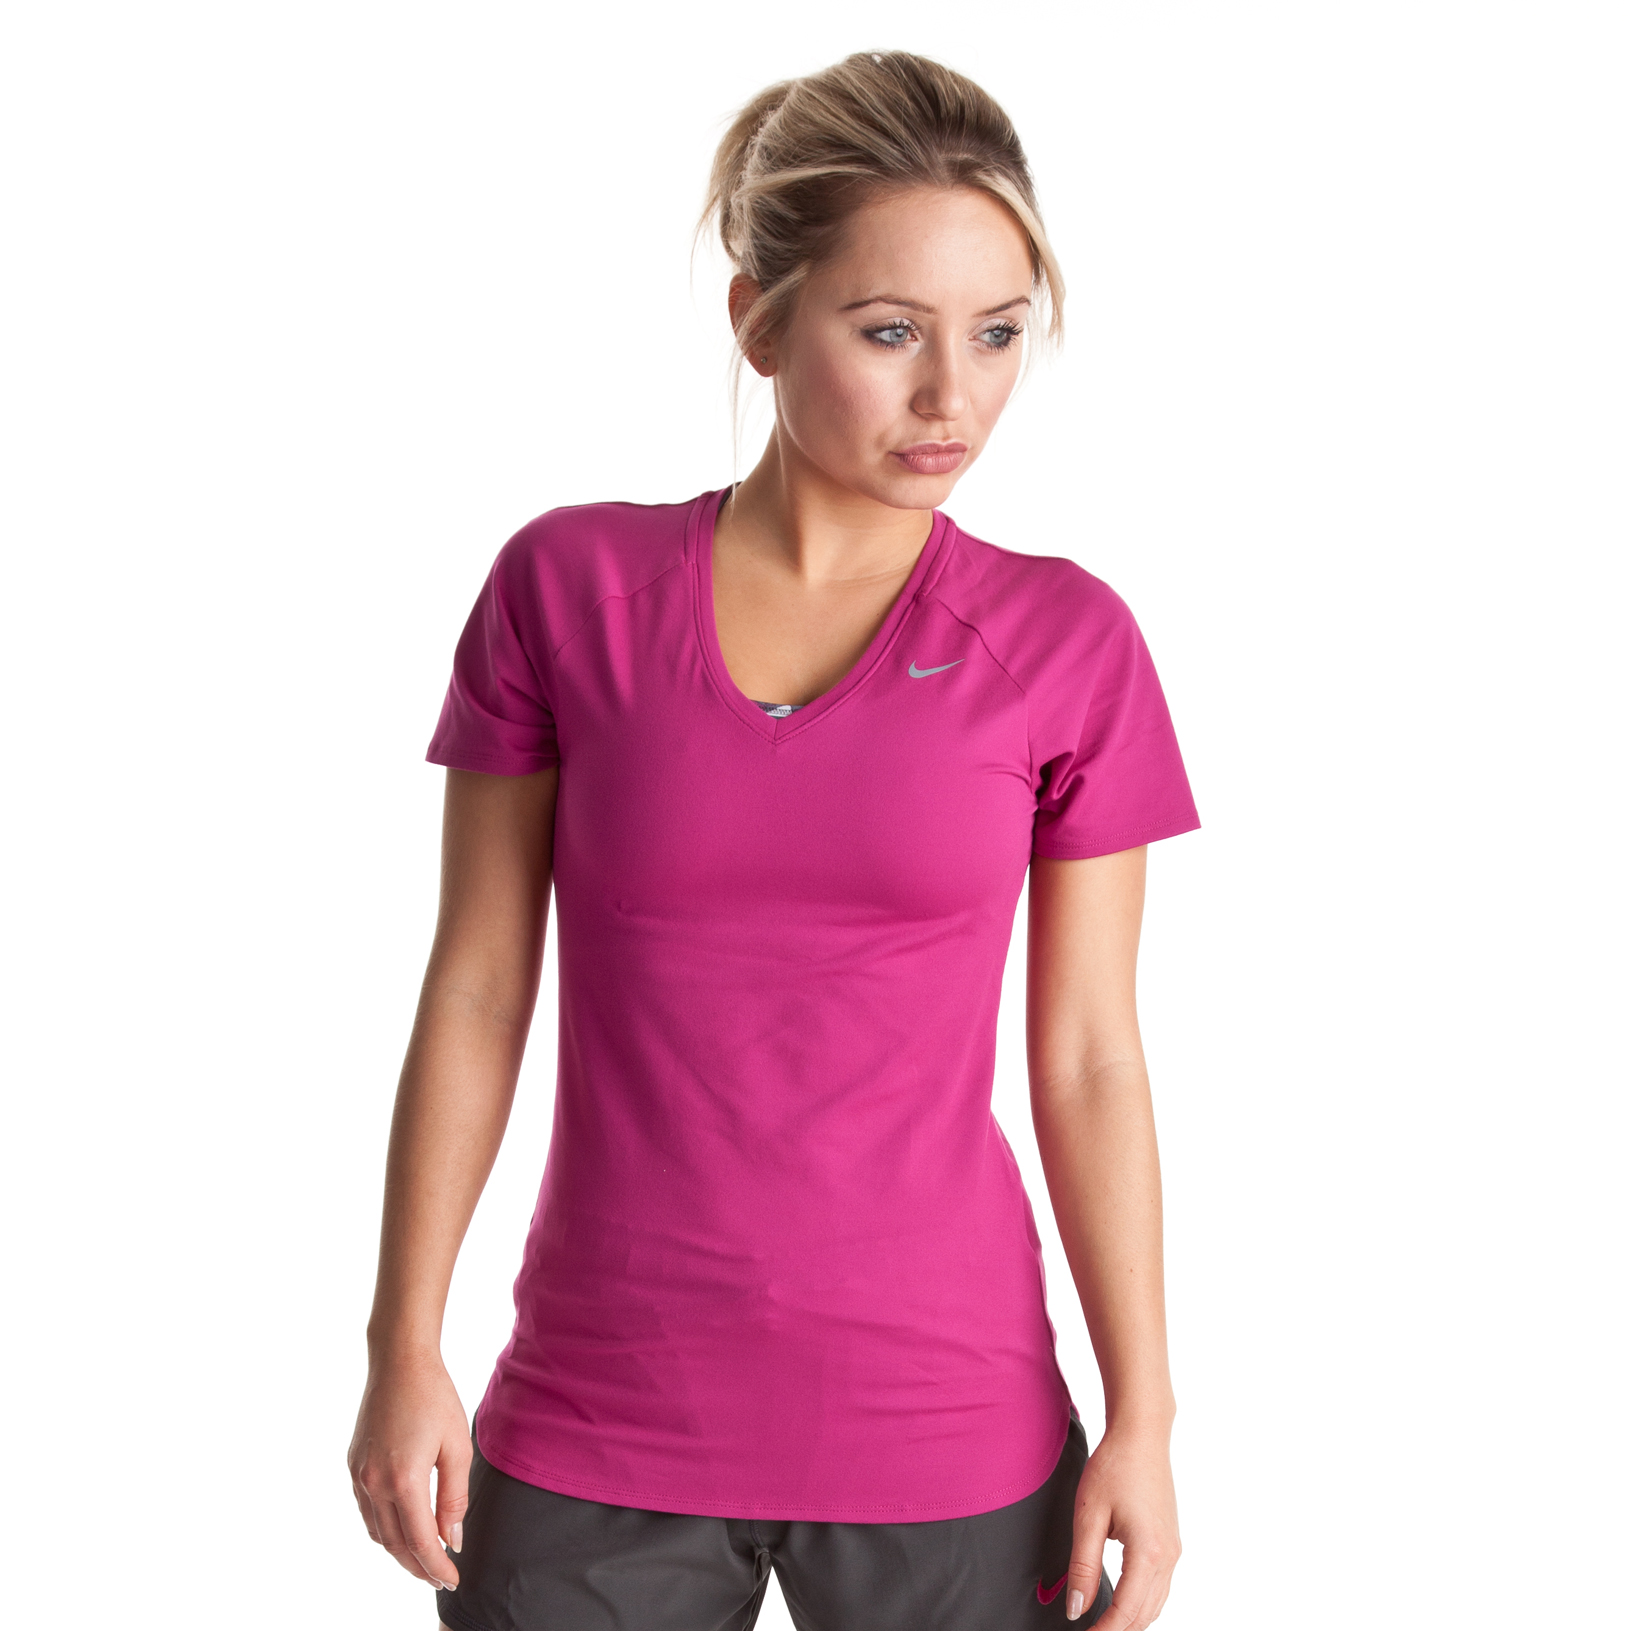 Nike Regular Club Short Sleeve - Rave Pink/Cool Grey - Womens